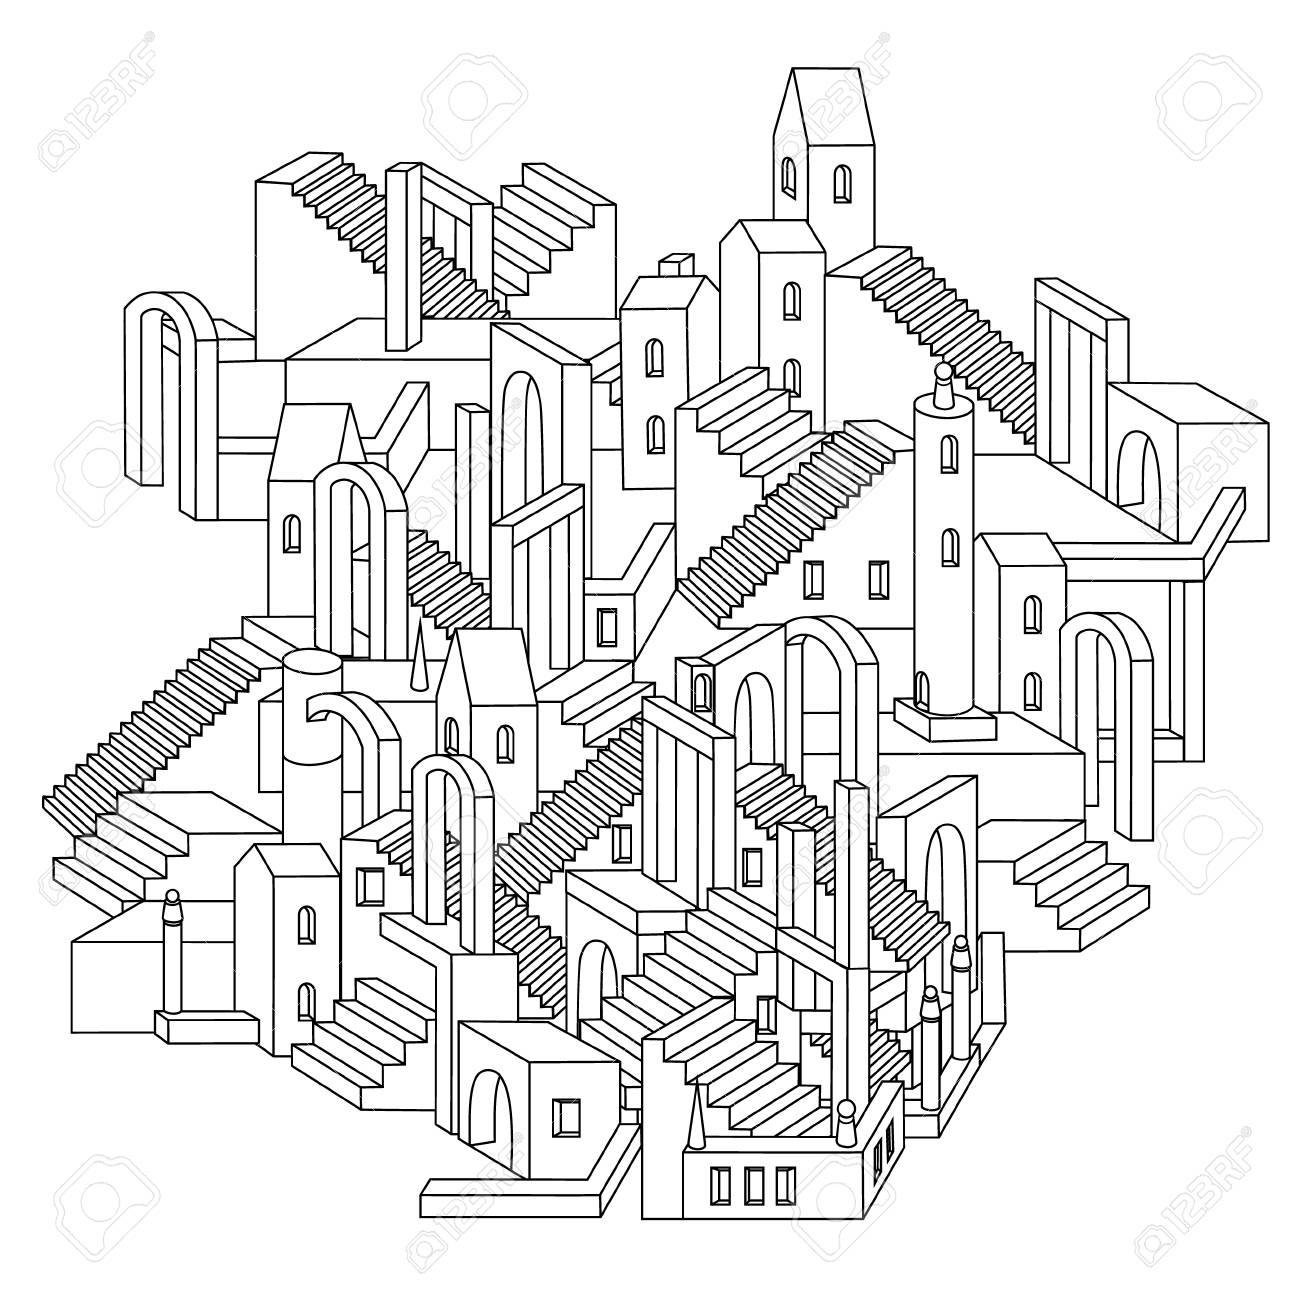 1300x1300 Drawing Of A Non Existent Unreal City Maze With Houses, Walls